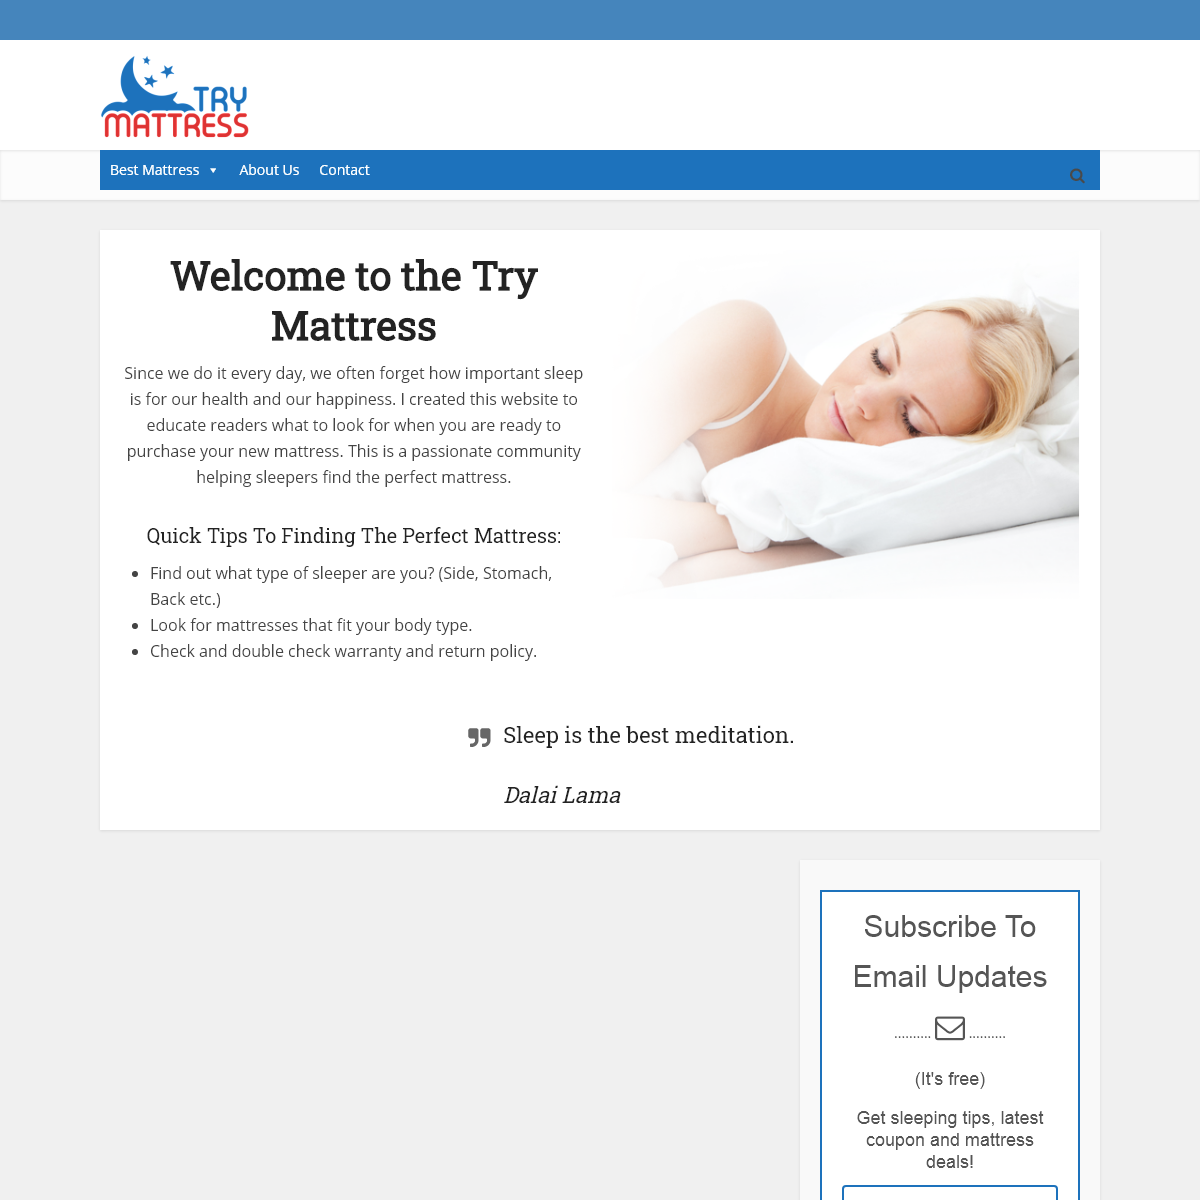 Try Mattress - Product Guides & Sleep Advice